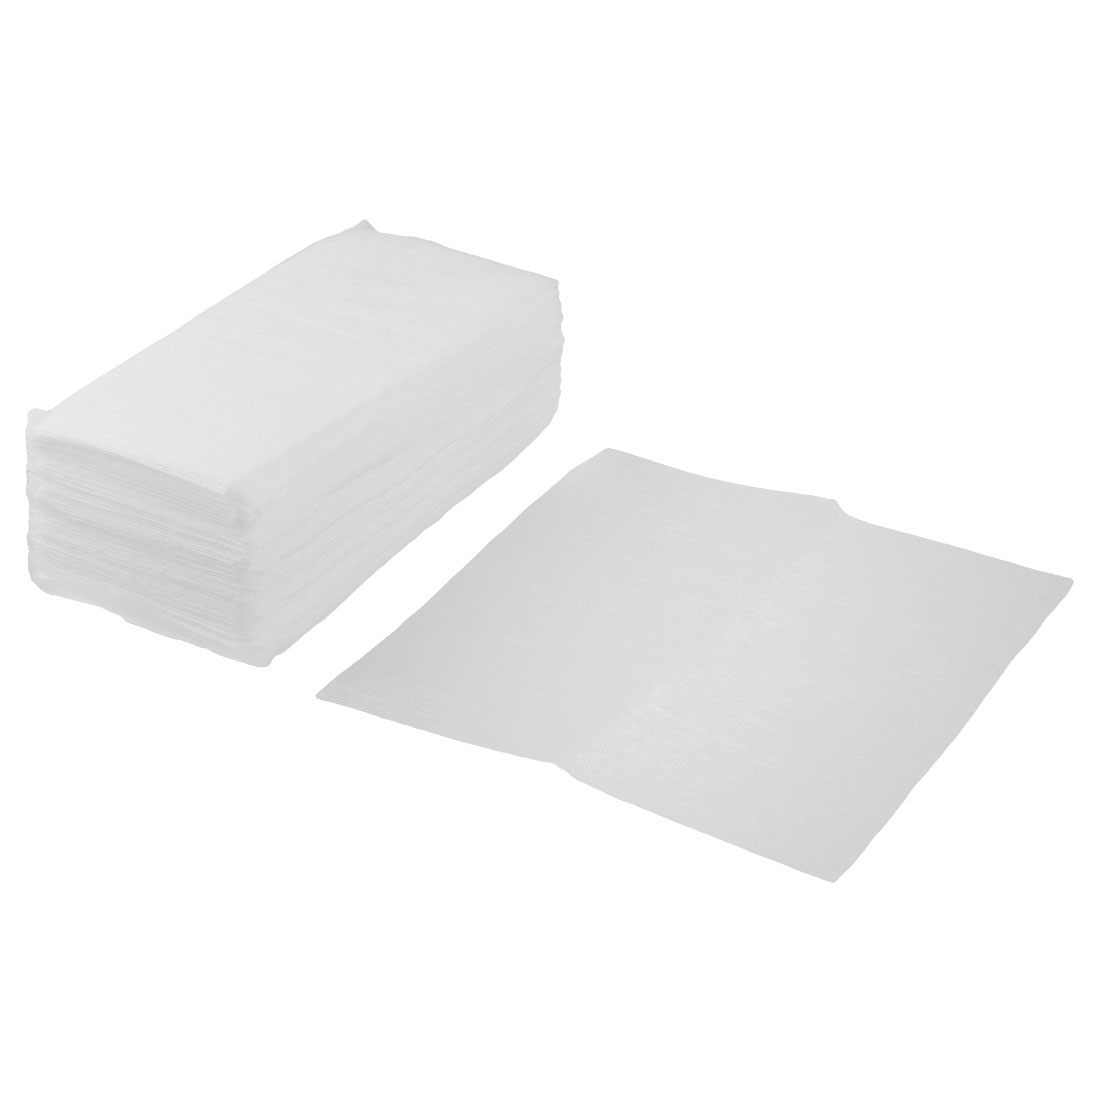 Kitchenware Rectangle Design Disposable Bowl Pot Dish Wiping Cleaning Cloth White 80pcs